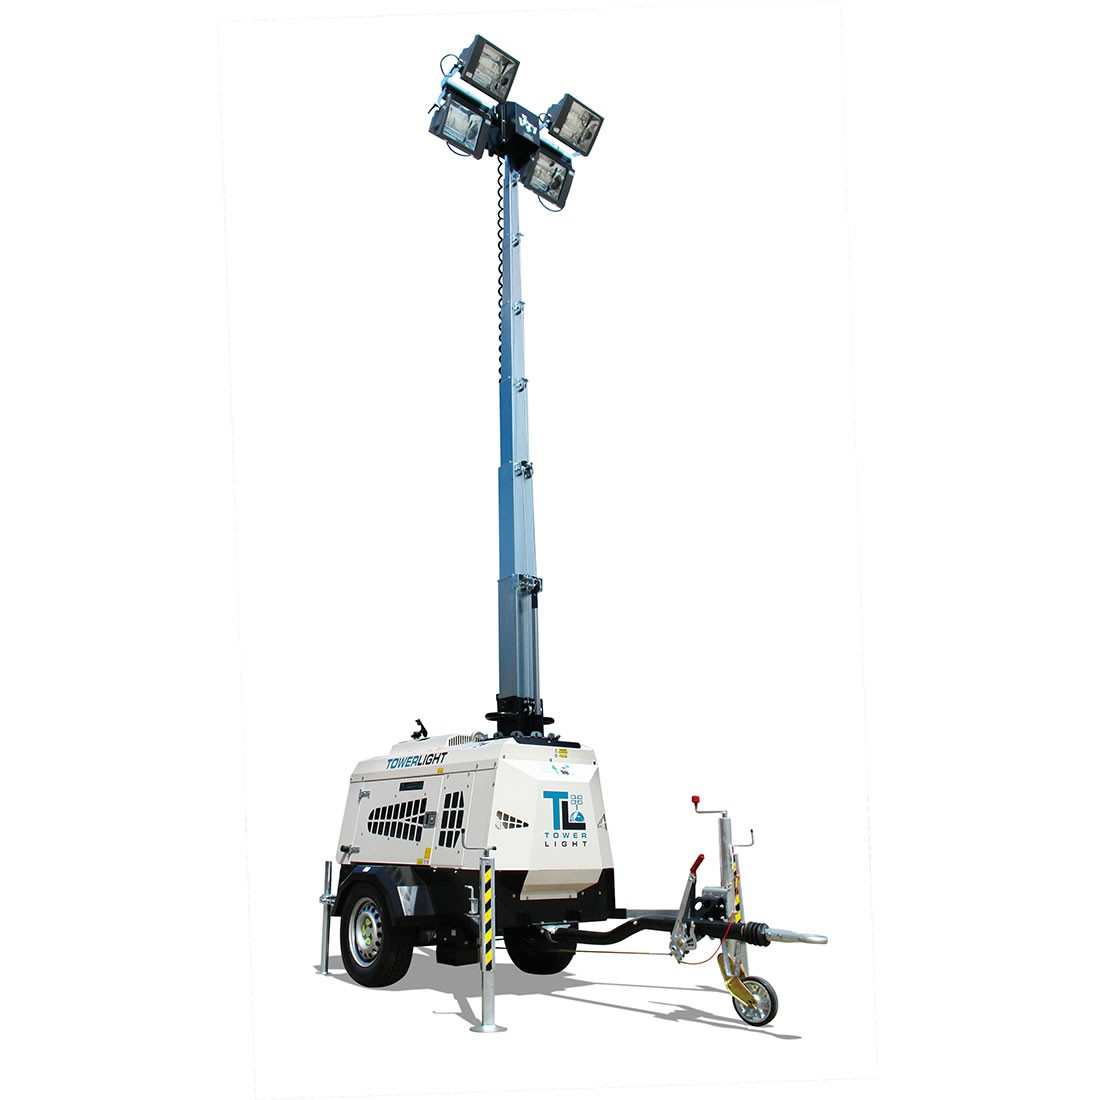 VT-1 Road Towable Light Tower - 9M Diesel